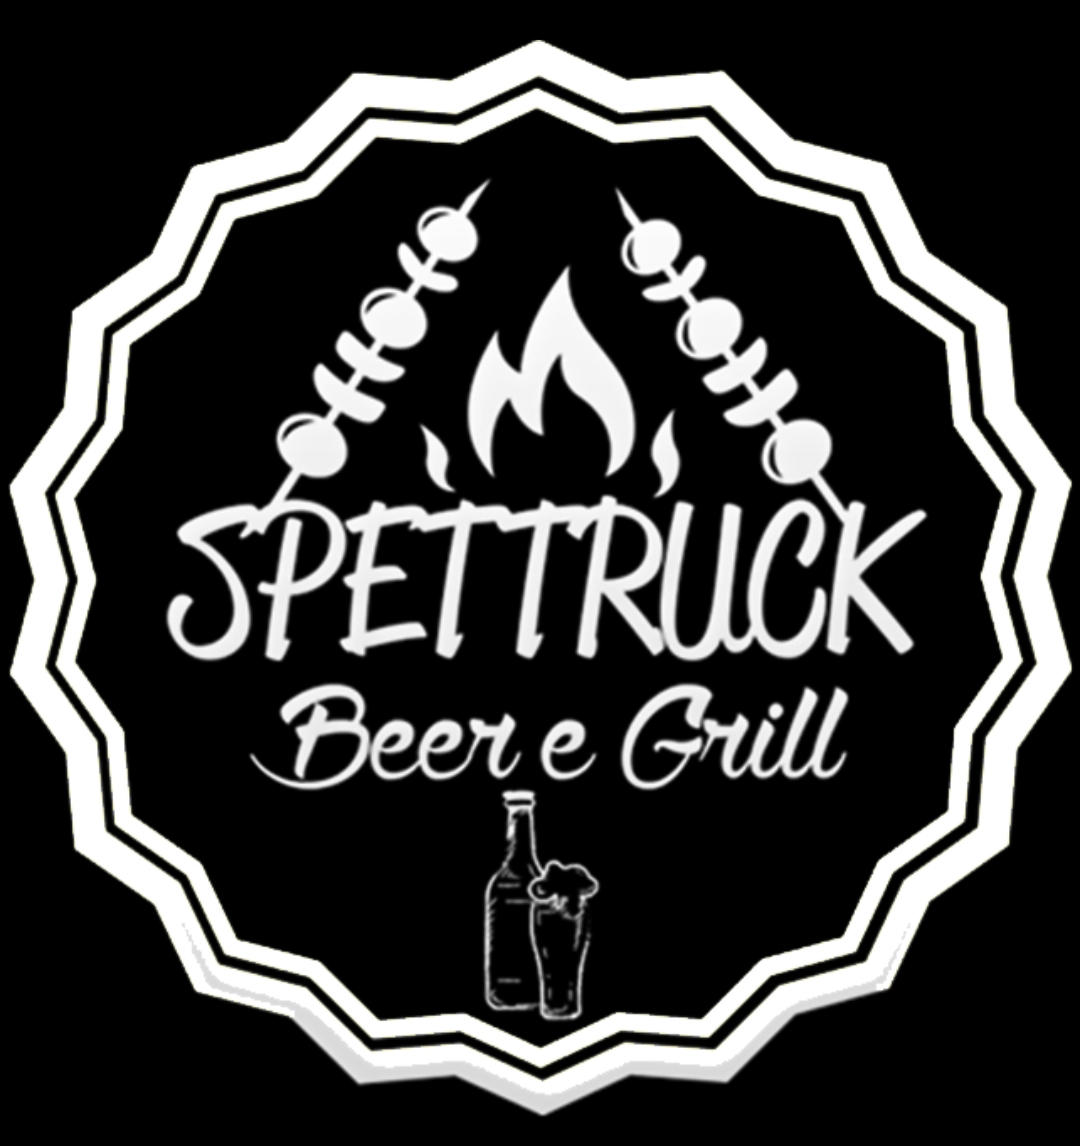 Logo-Fast Food - Spettruck Beer e Grill